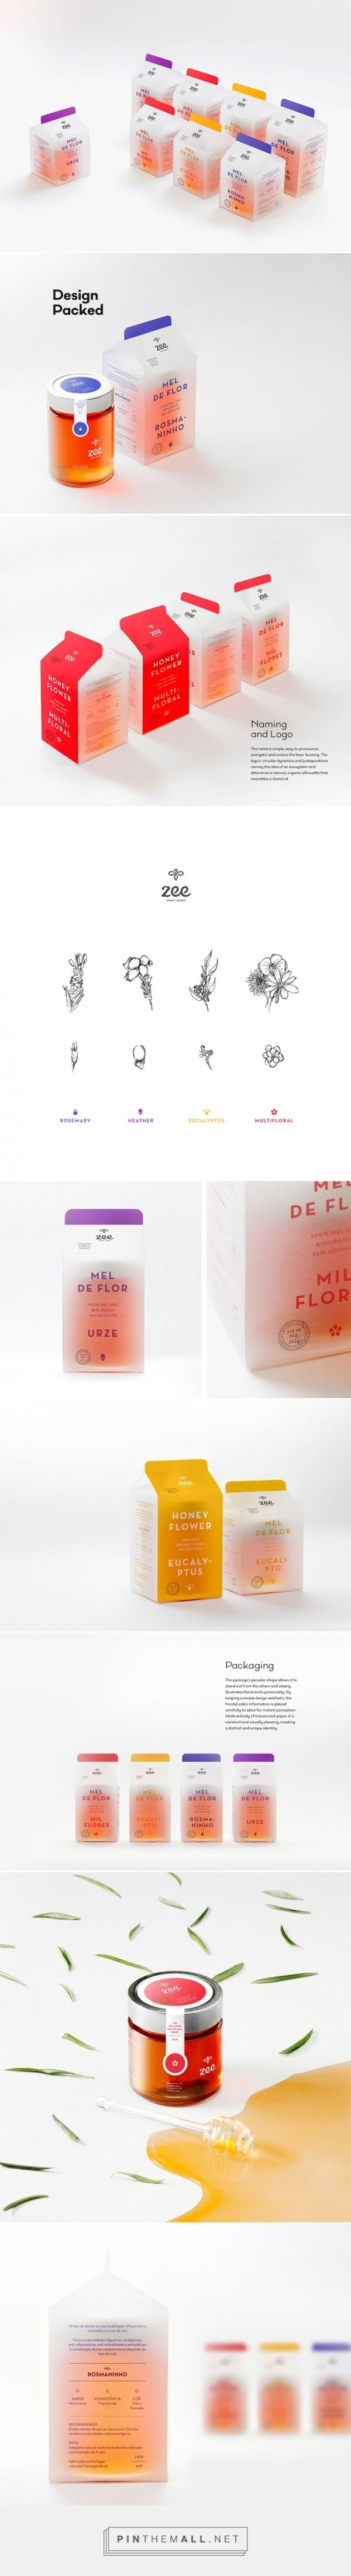 Zee Honey Goods packaging design by gen design studio (Portugal) - http://www.packagingoftheworld.com/2016/06/zee-honey-goods.html